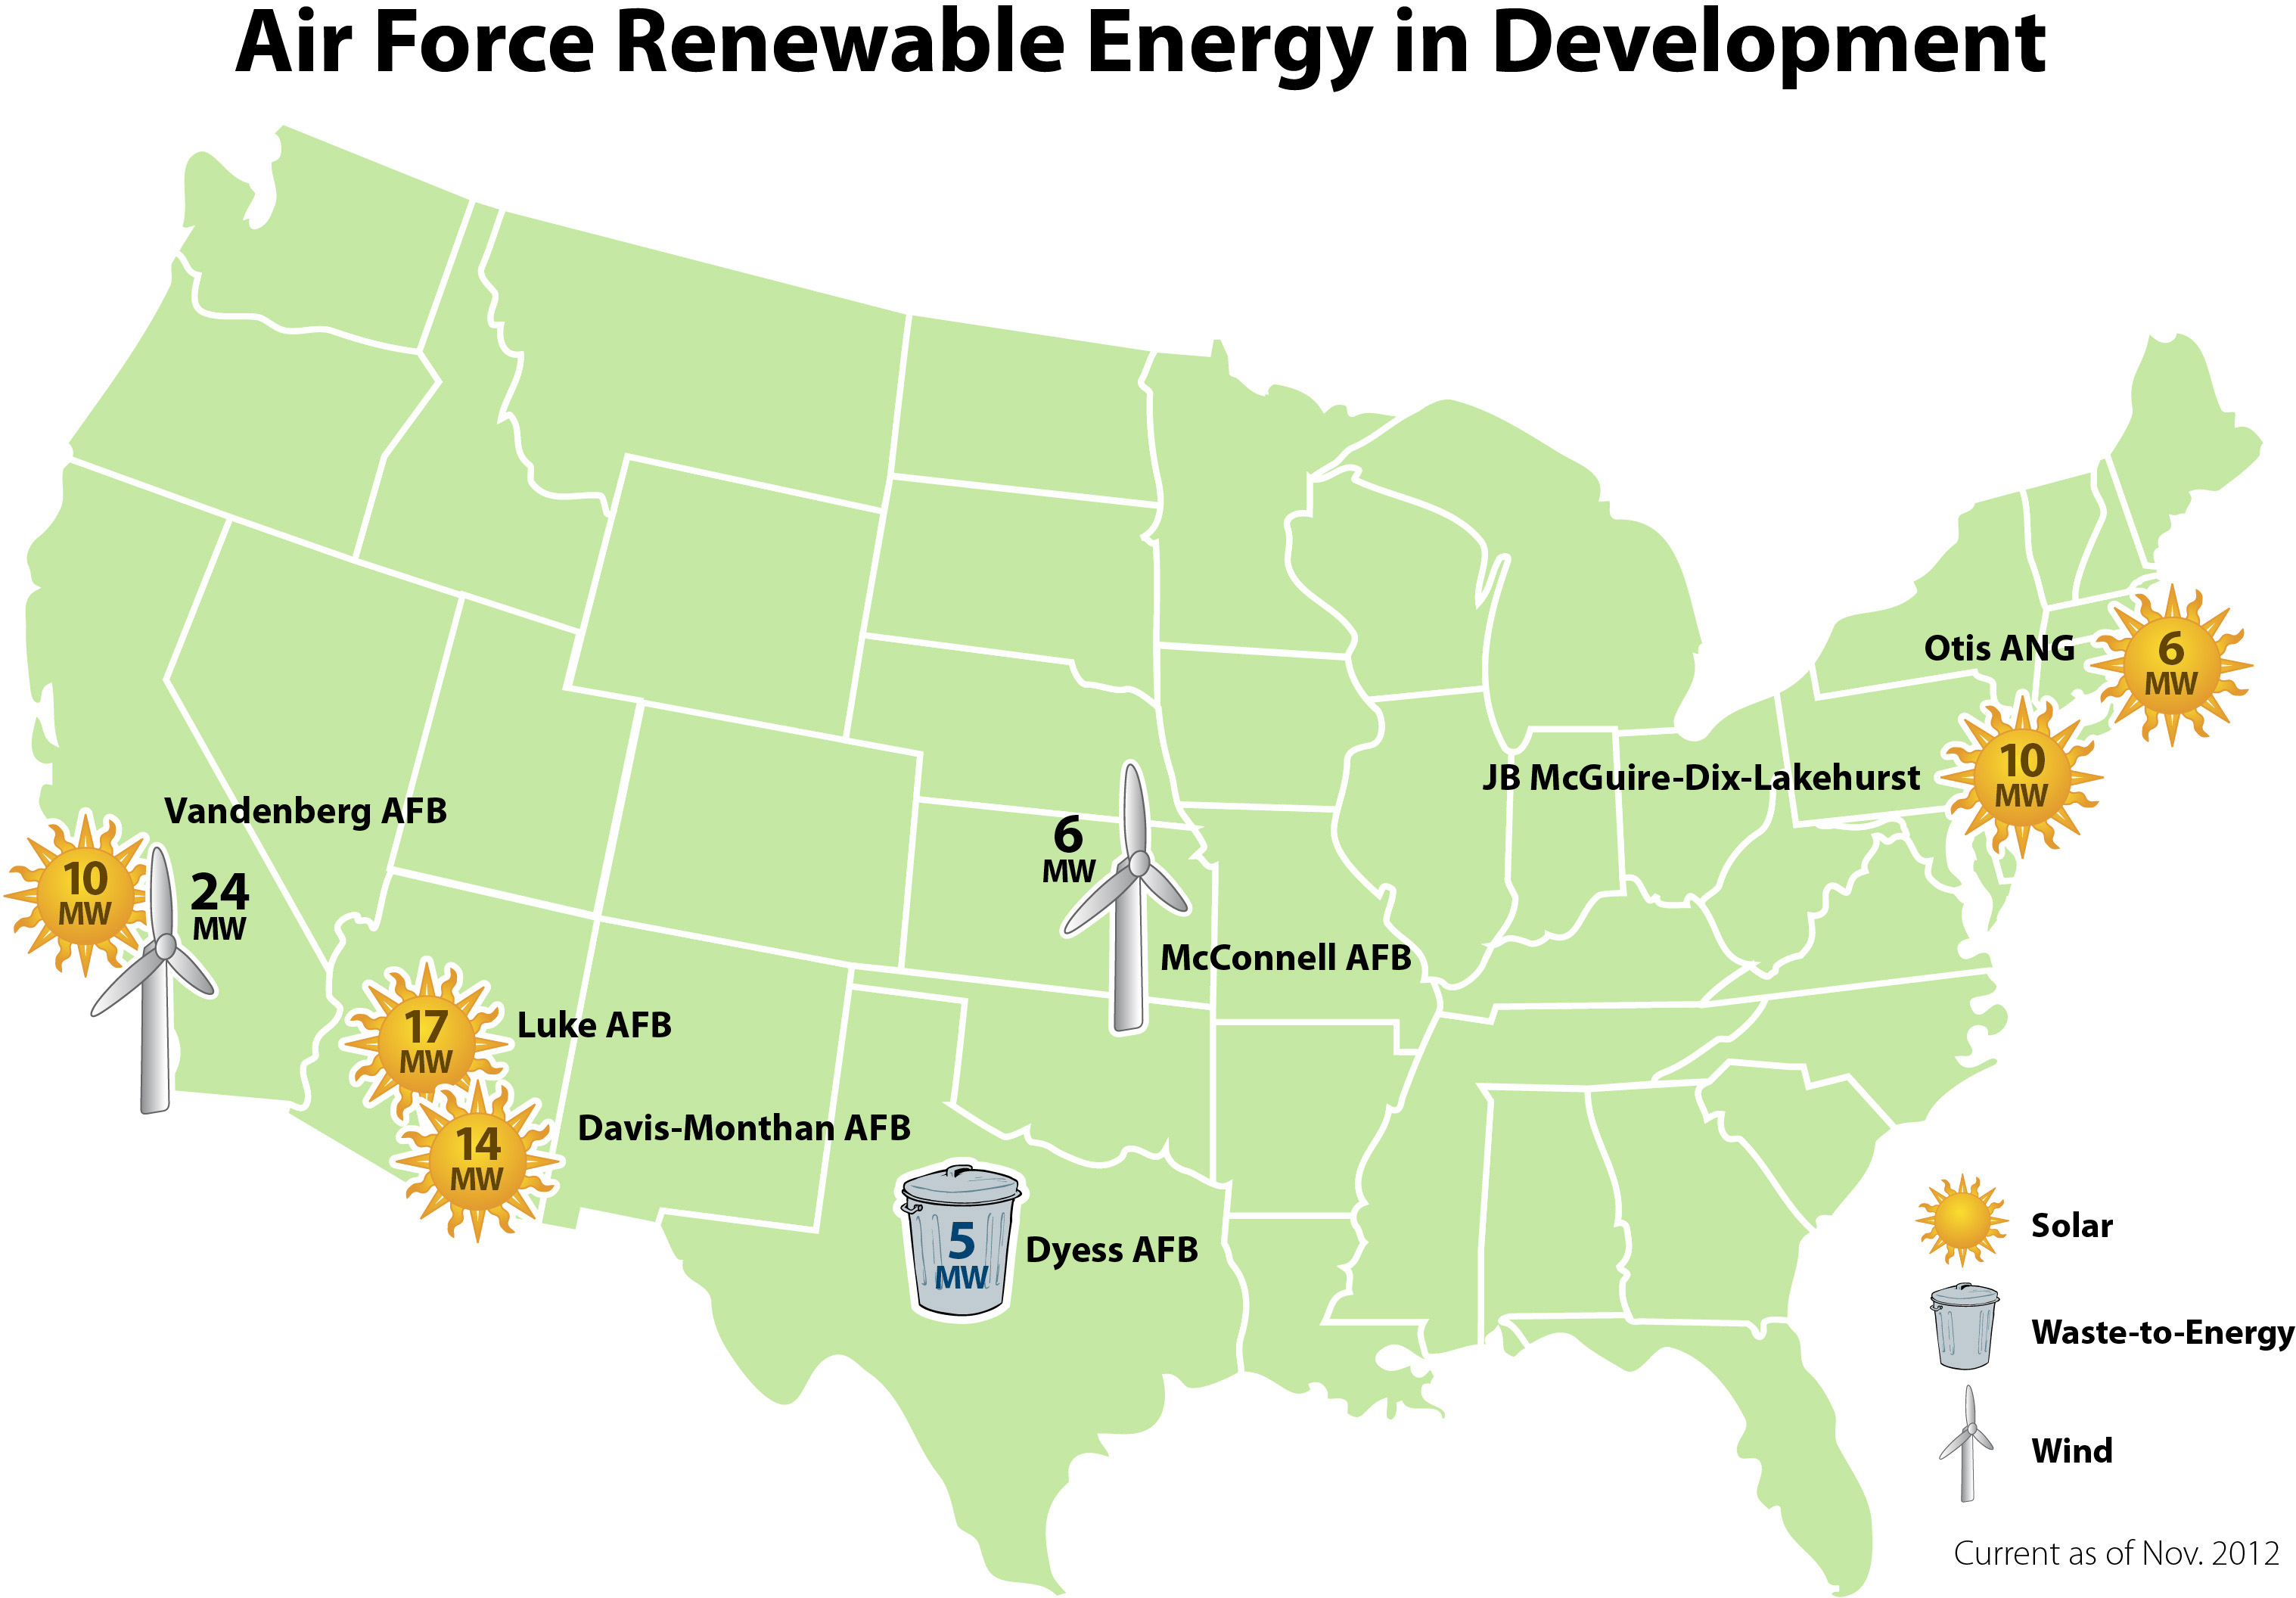 Air Force Renewable Energy Projects in Development Map